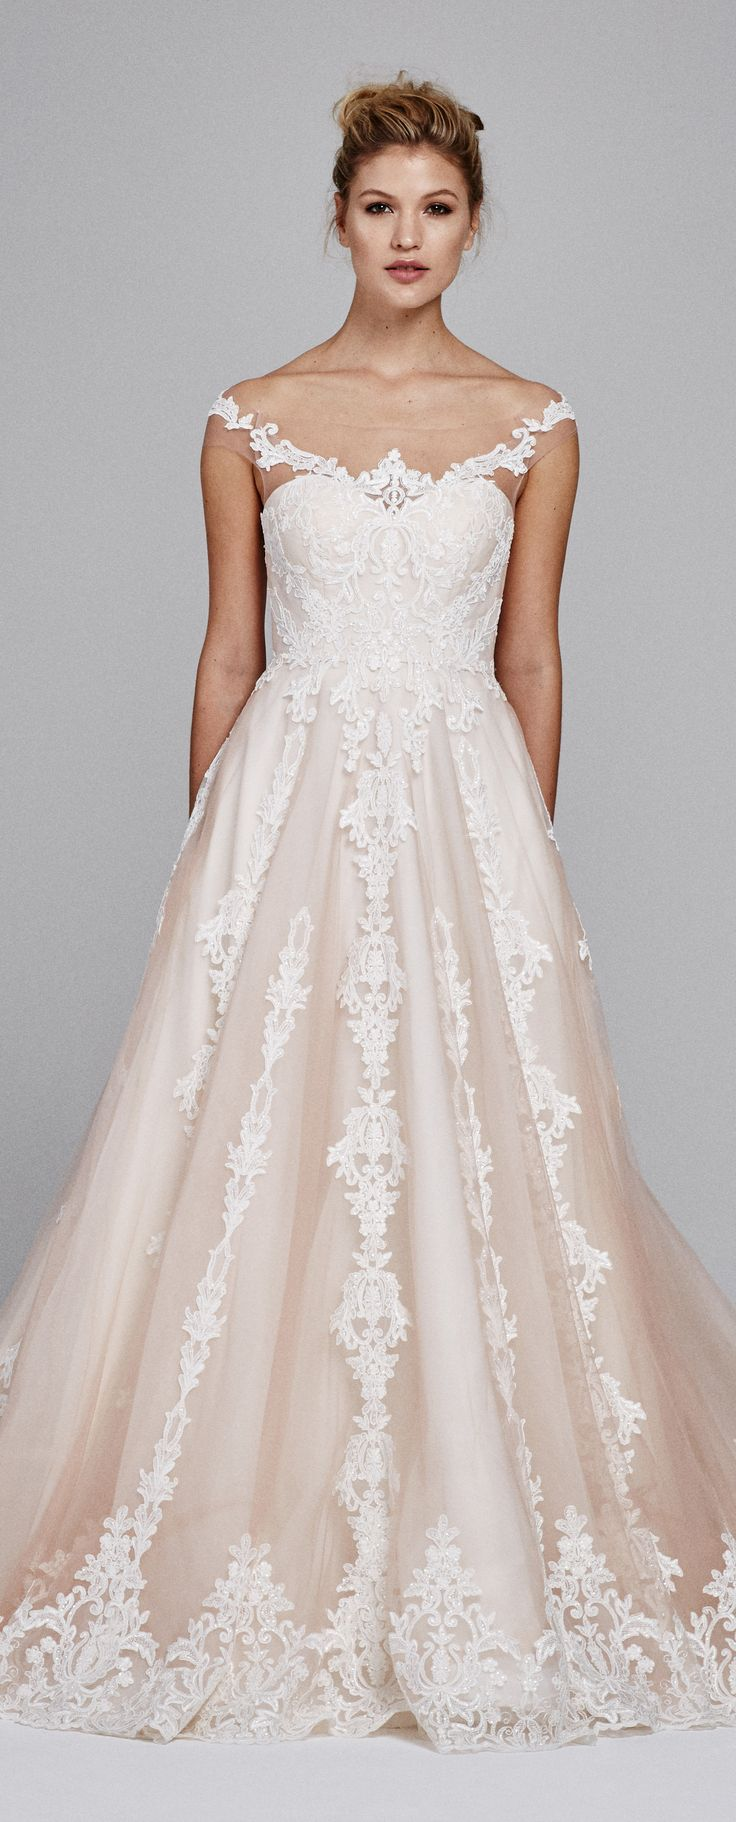 Blush Wedding Dress by Kelly Faetanini Fall 2017 | Off the shoulder sweetheart silk organza ballgown with sequin sprayed embroidered bodice and vertical embroidery lace on skirt.